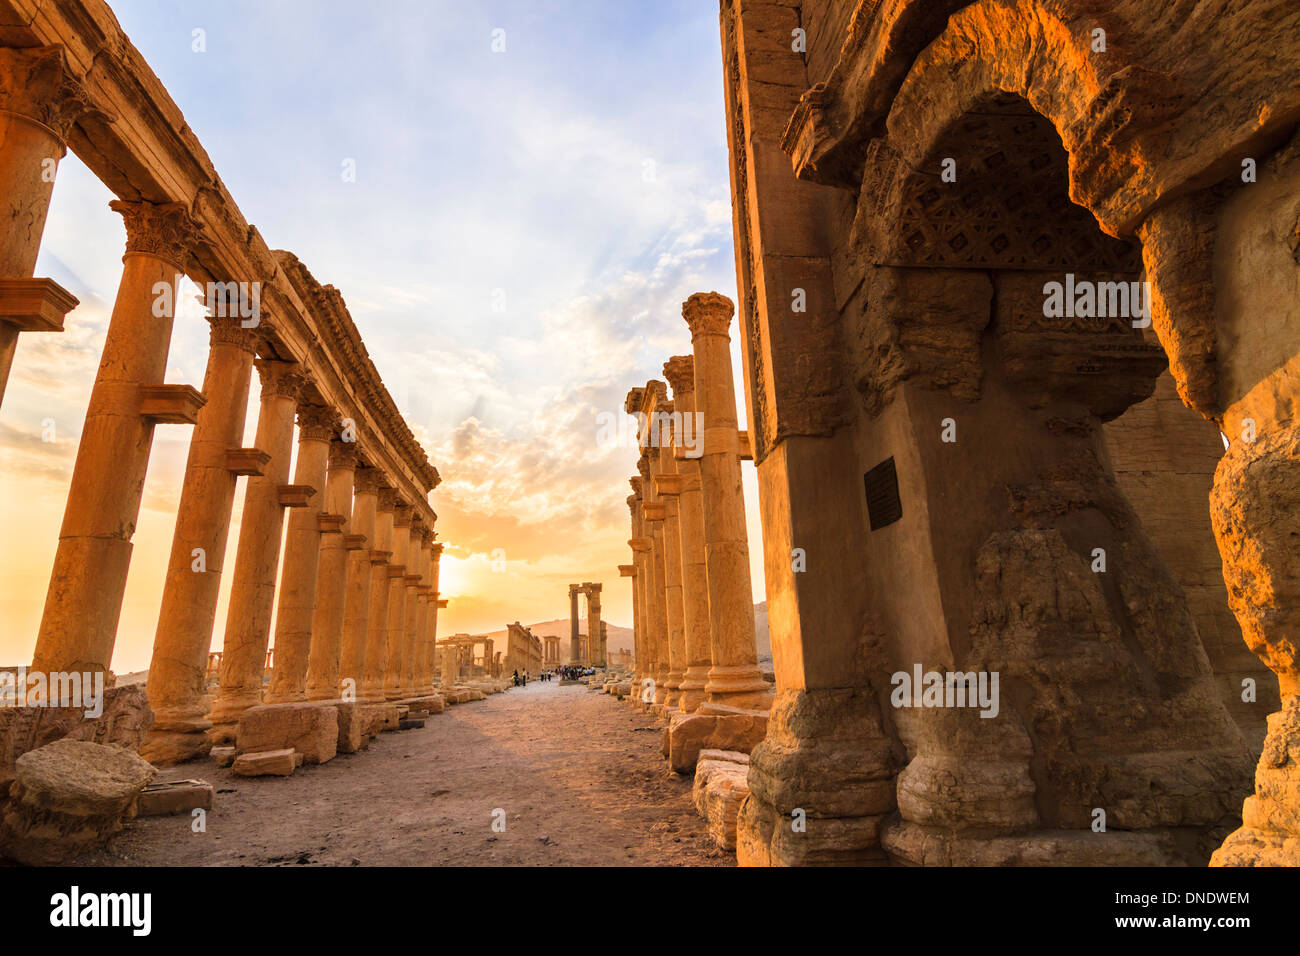 Great Colonnade at sunset. Palmyra, Syria - Stock Image